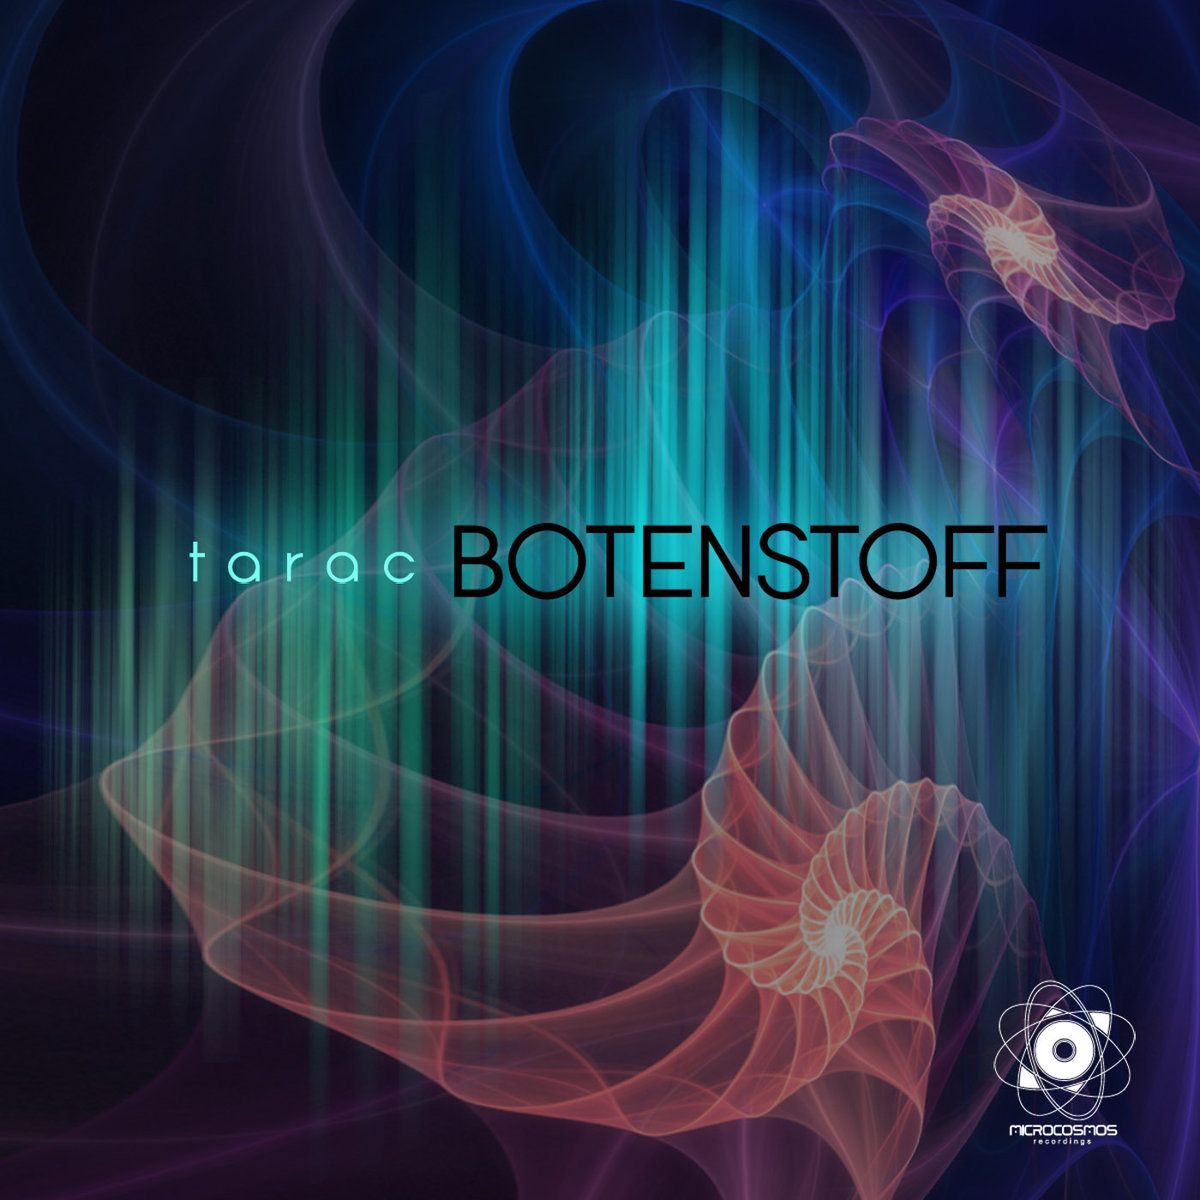 Tarac - Wisper @ 'Botenstoff' album (ambient, chill-out)